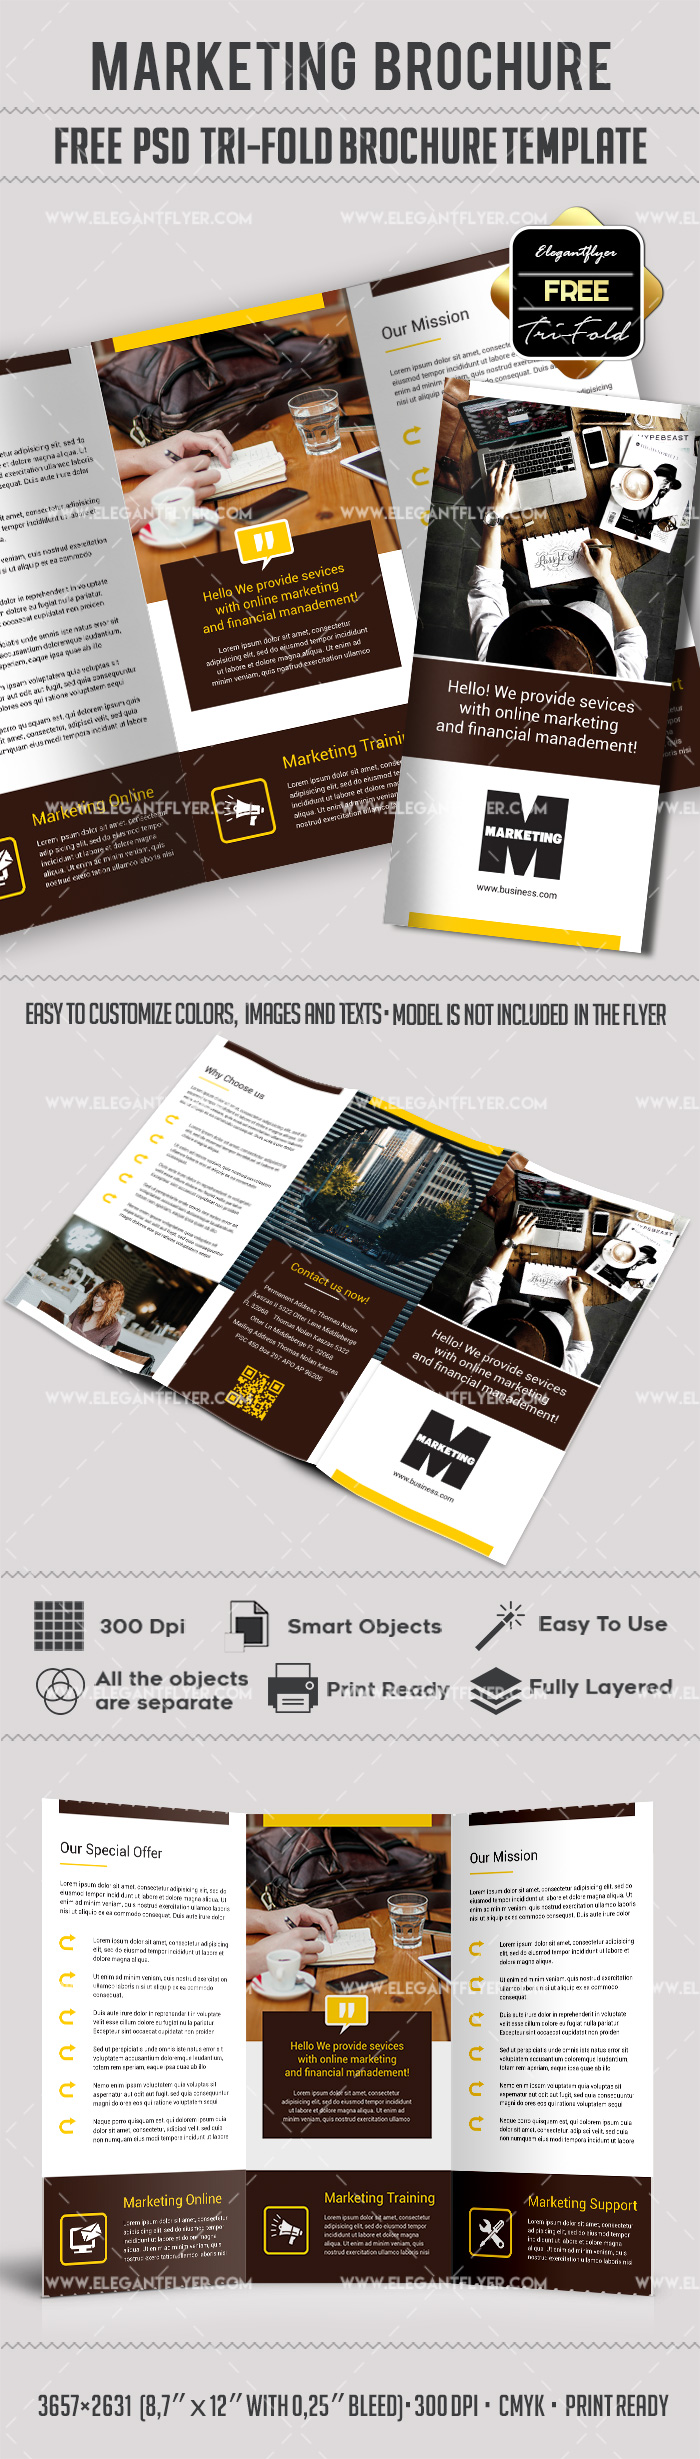 free download brochure templates psd - marketing free tri fold psd brochure template by